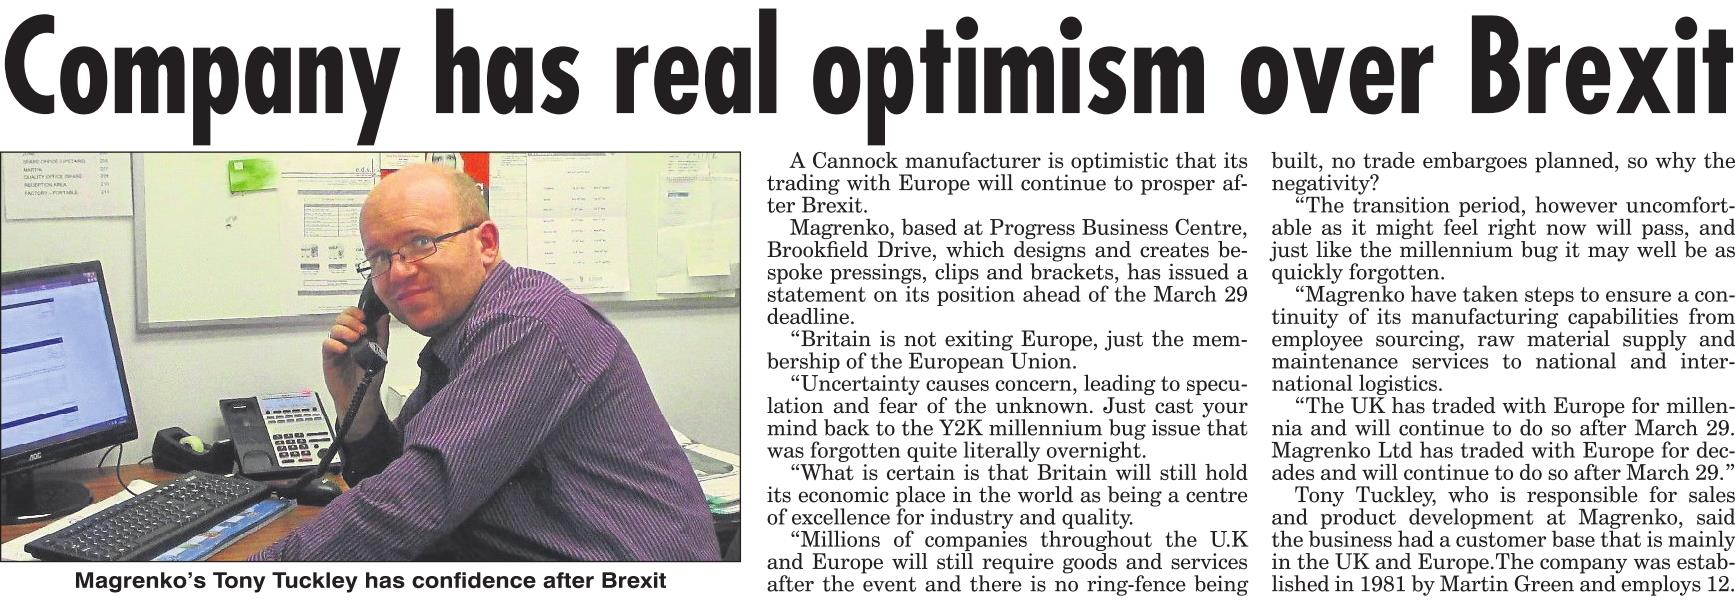 Magrenko has real optimism over Brexit.